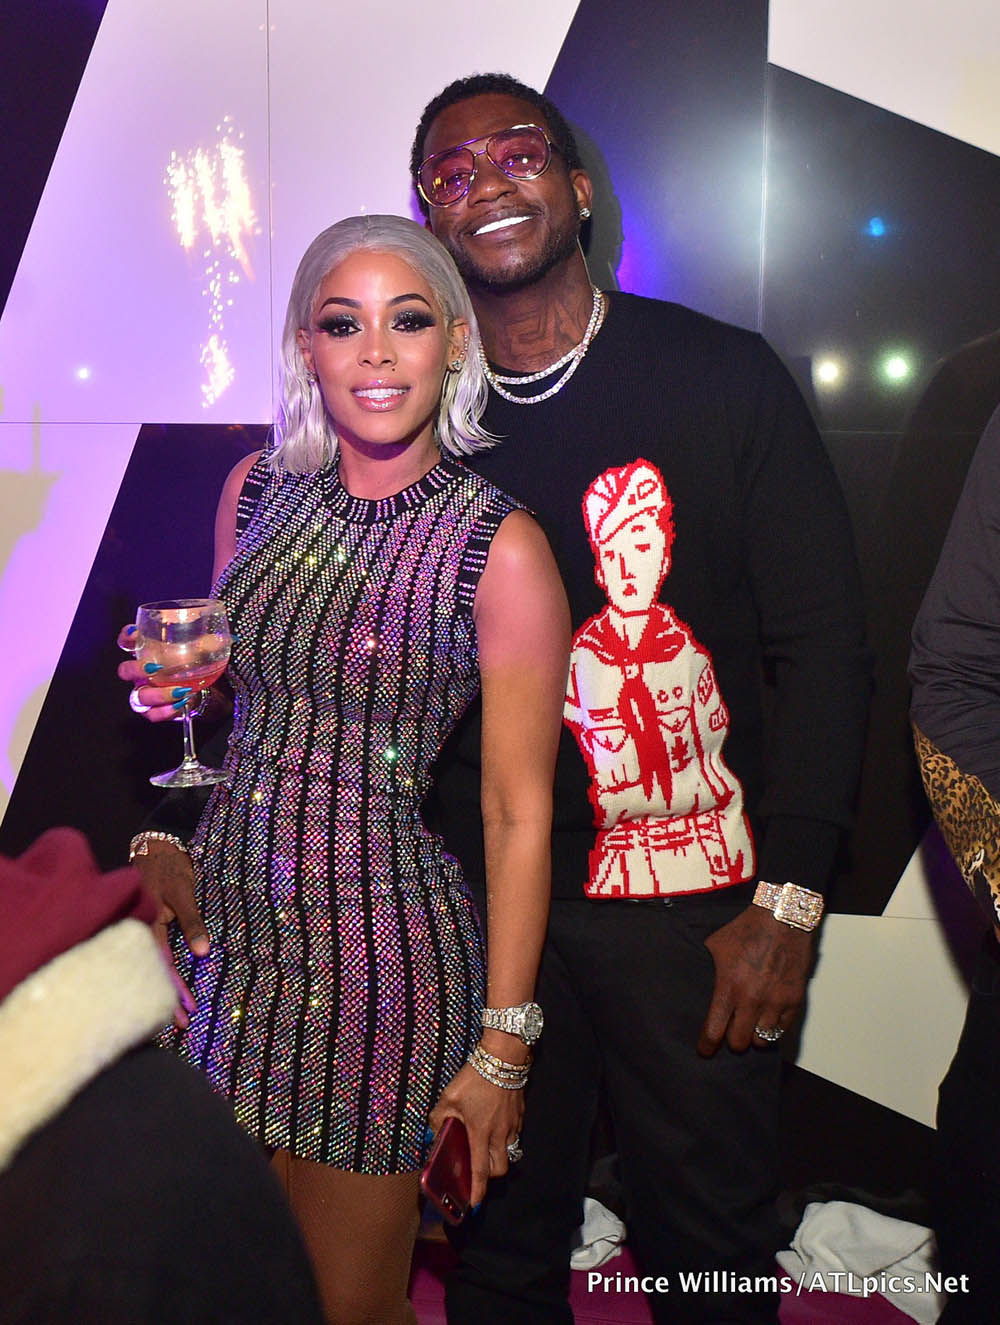 Keyshia Ka'Oir & Gucci Mane celebrate her 33rd birthday at Gold Room